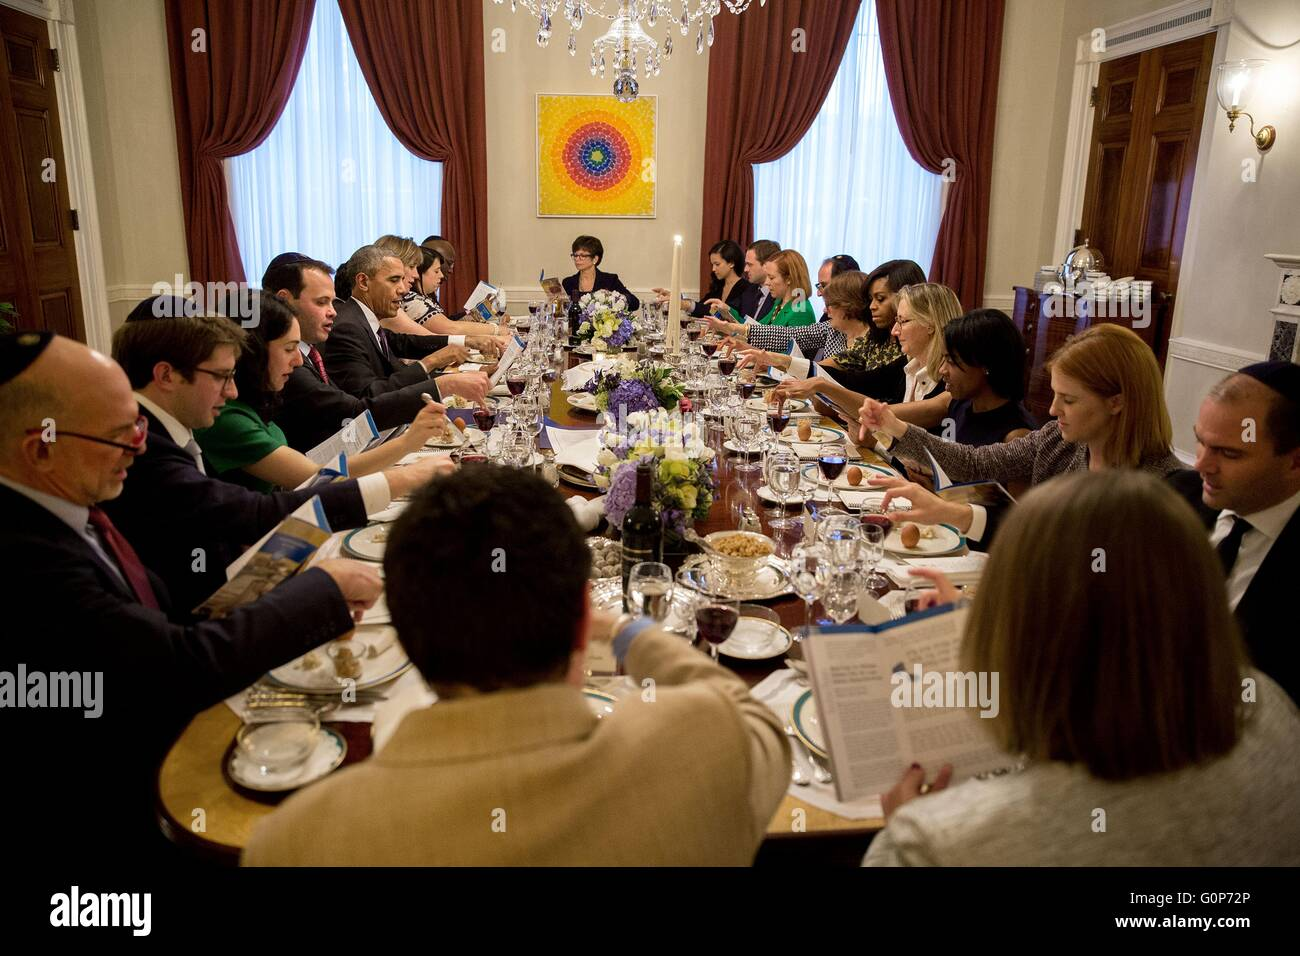 U.S President Barack Obama and First Lady Michelle Obama host a Passover Seder dinner with friends and staff in - Stock Image